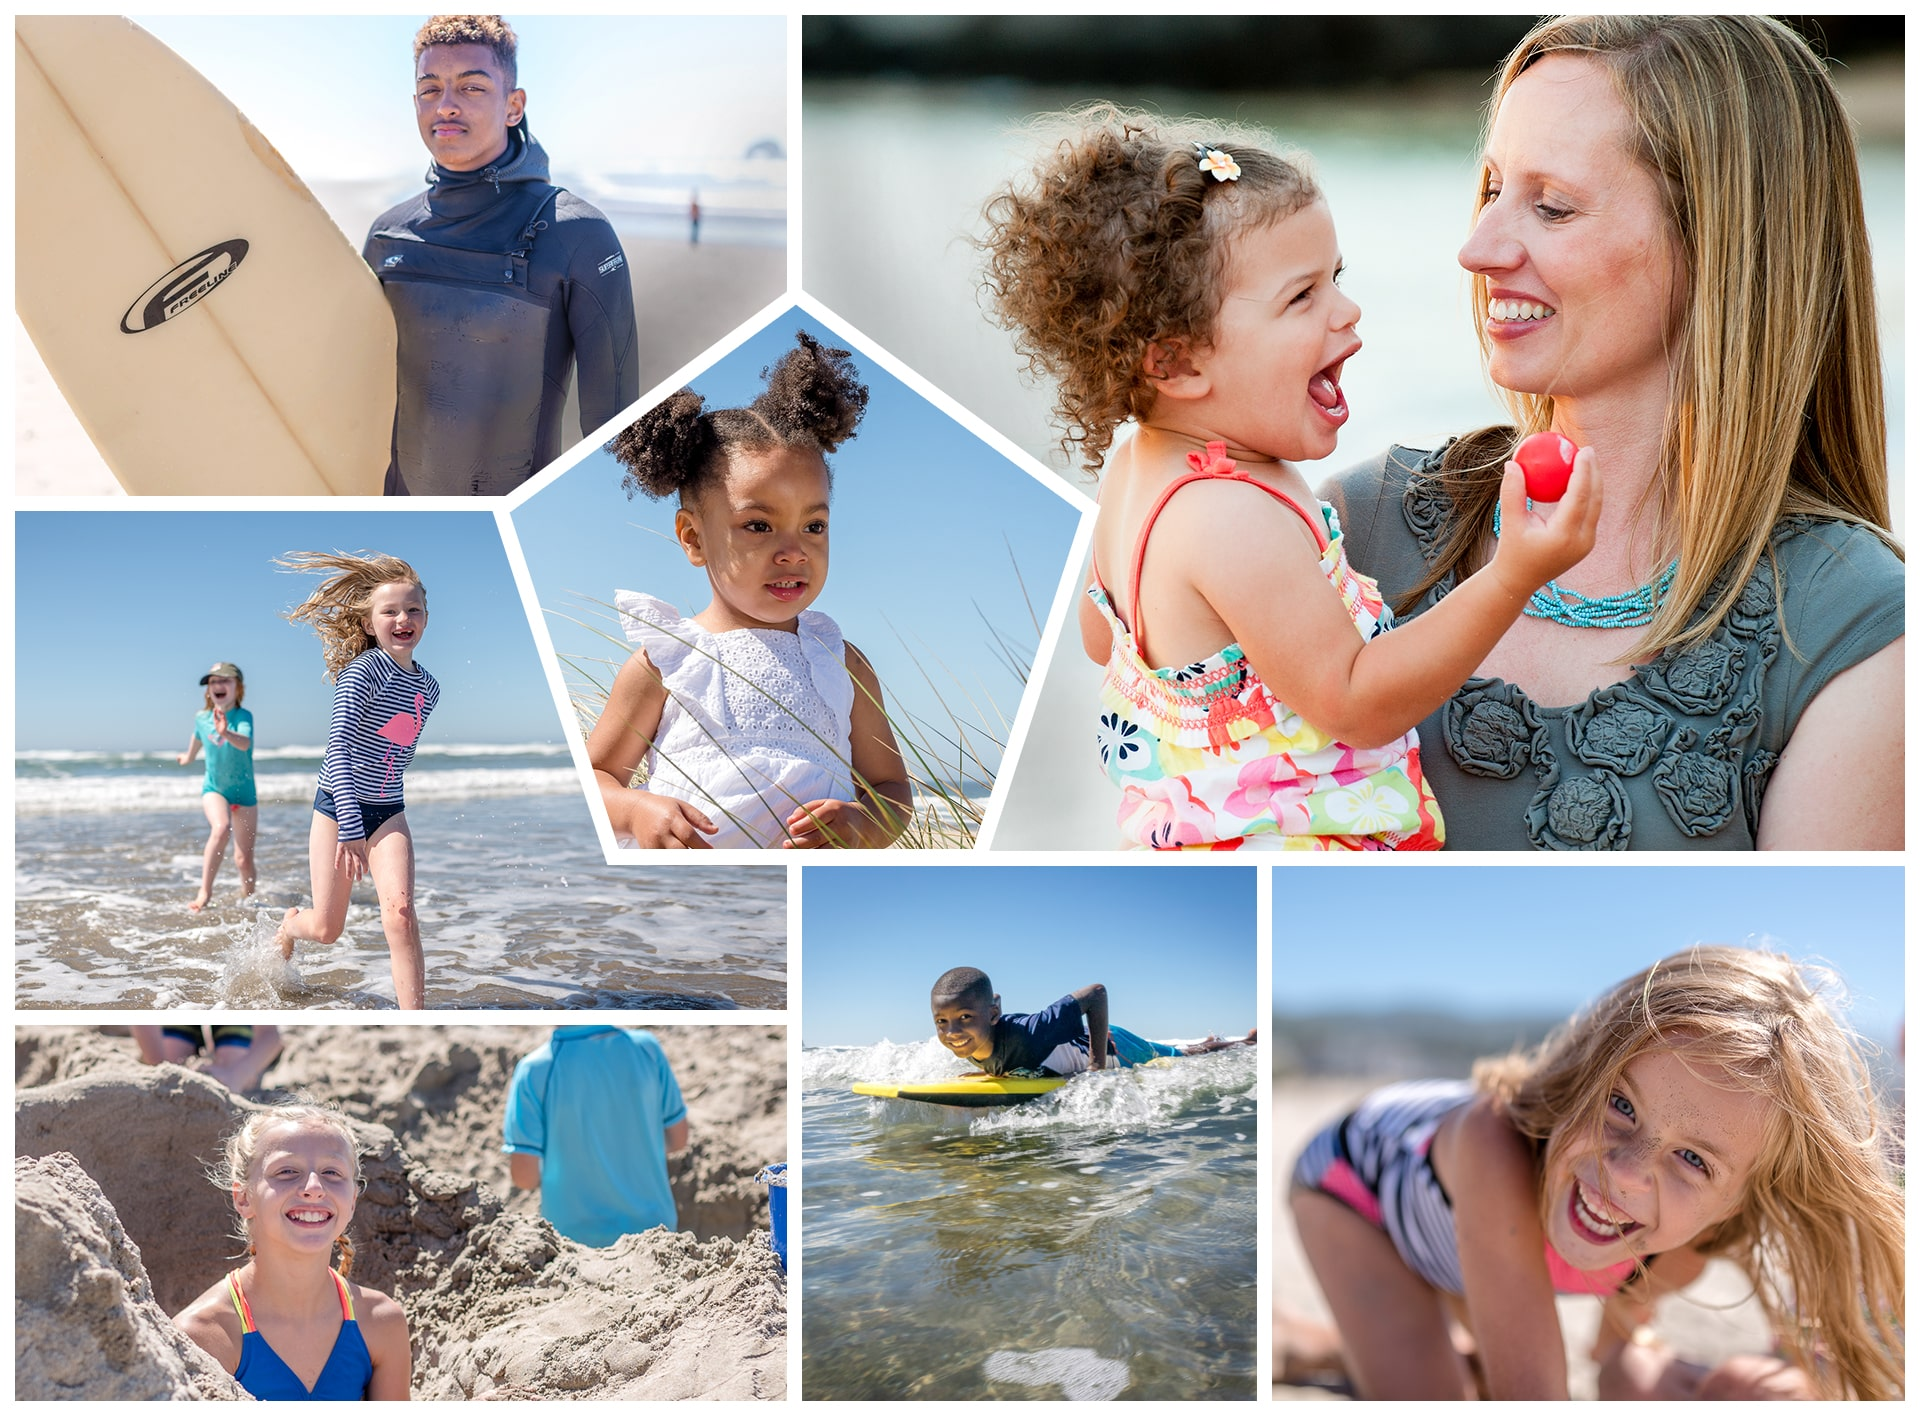 Collage of photos of little children on the beach - surfing the wave to catch that perfect smile